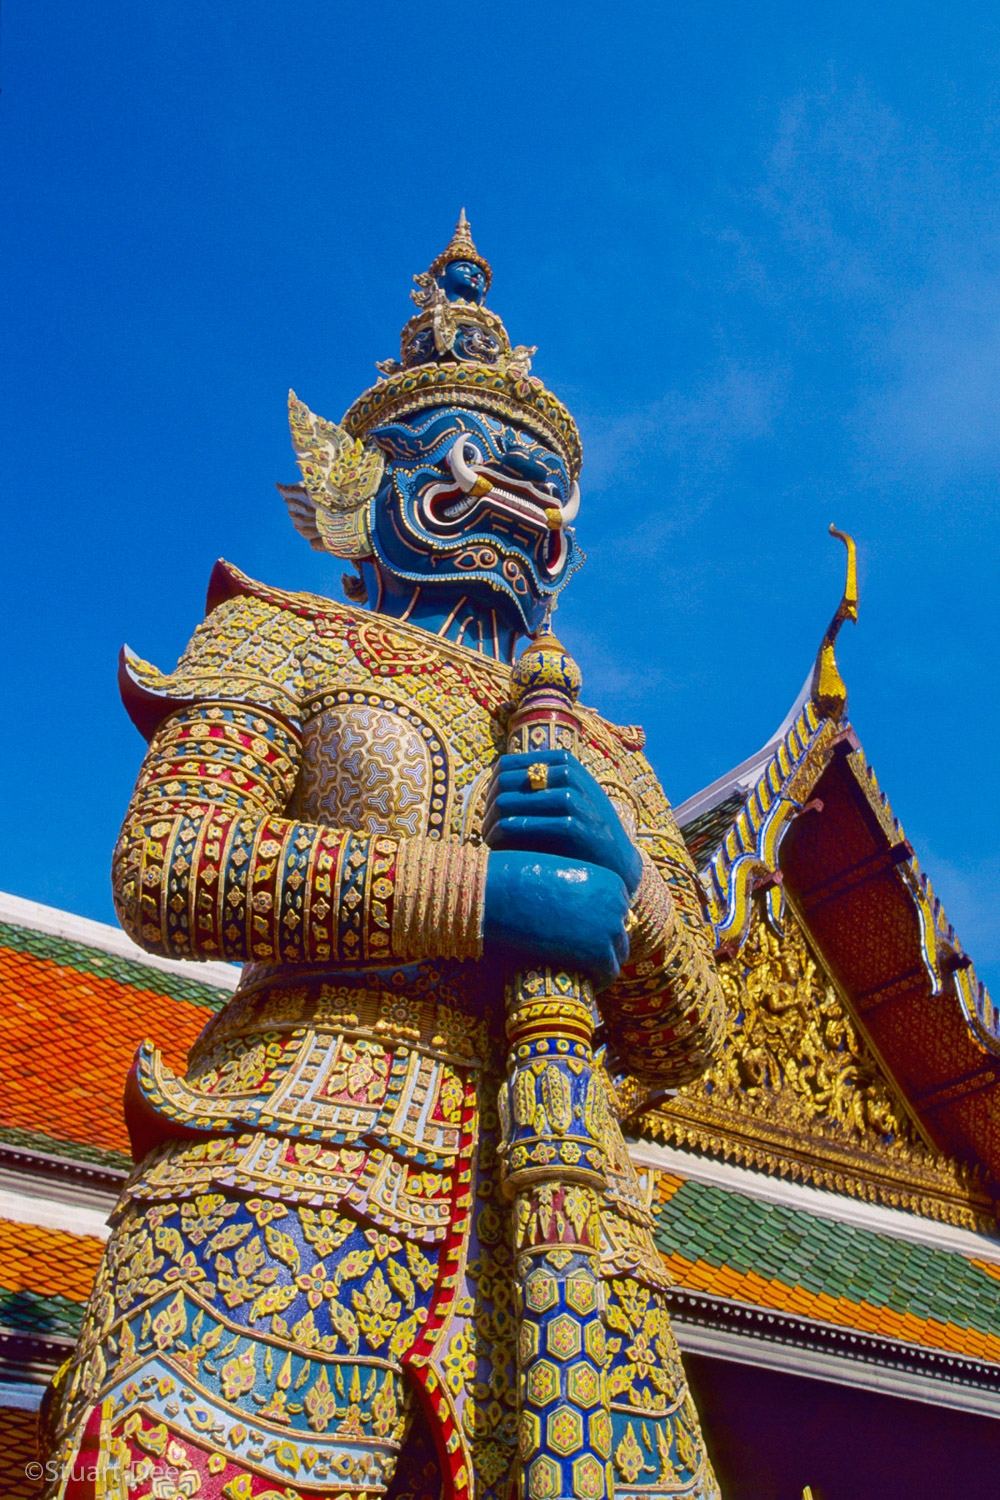 """Yak"" or giant guarding entrance gates, Wat Phra Kaeo/Grand Palace, Bangkok, Thailand"